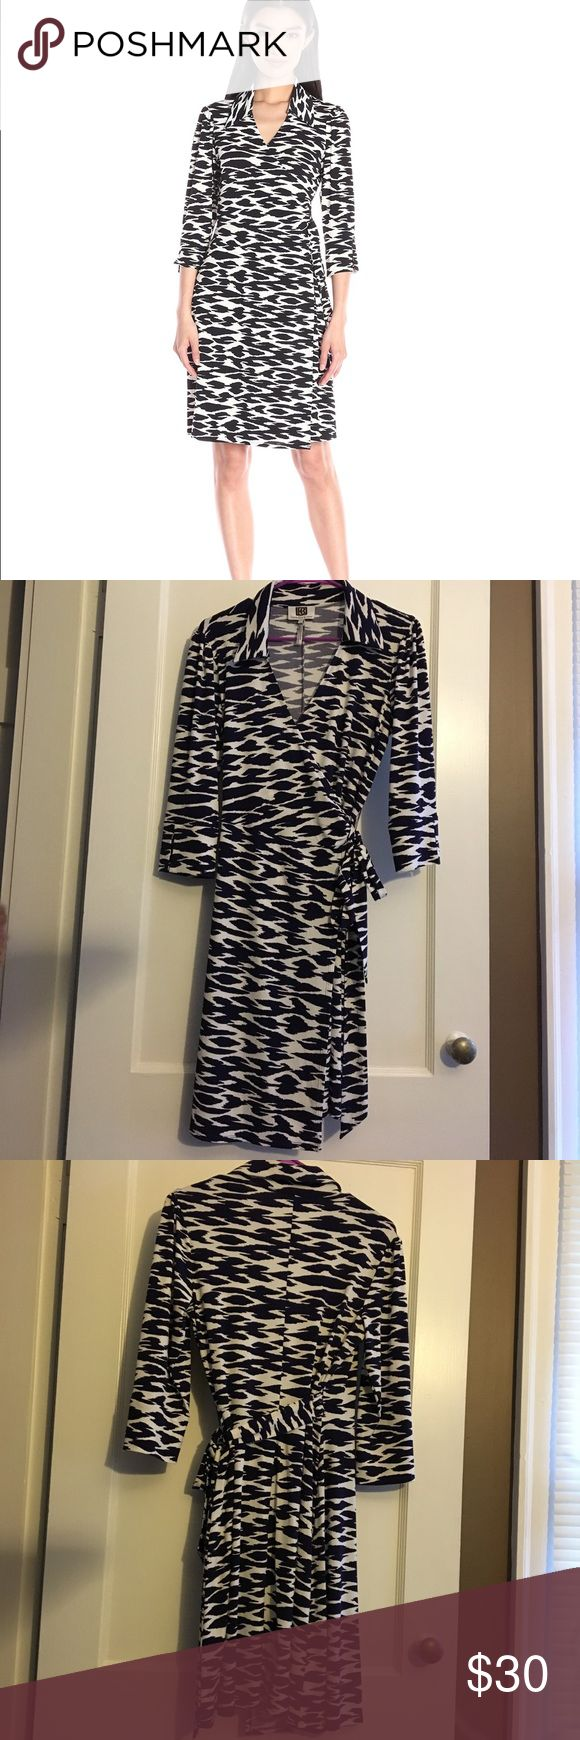 """Laundry Shelli Segal Cool Cat Wrap Dress Navy Laundry by Shelli Segal Wrap dress. Style is called """"Cool cat,"""" white and dark navy/purple print. I believe this is the color navy, but it reads a bit purple. See last pic for color. Size small. Excellent condition, no rips, stains, or tears, or any other flaws of note. This is a true Wrap dress that fully opens when untied. Sleeves have a split hem design Laundry By Shelli Segal Dresses"""